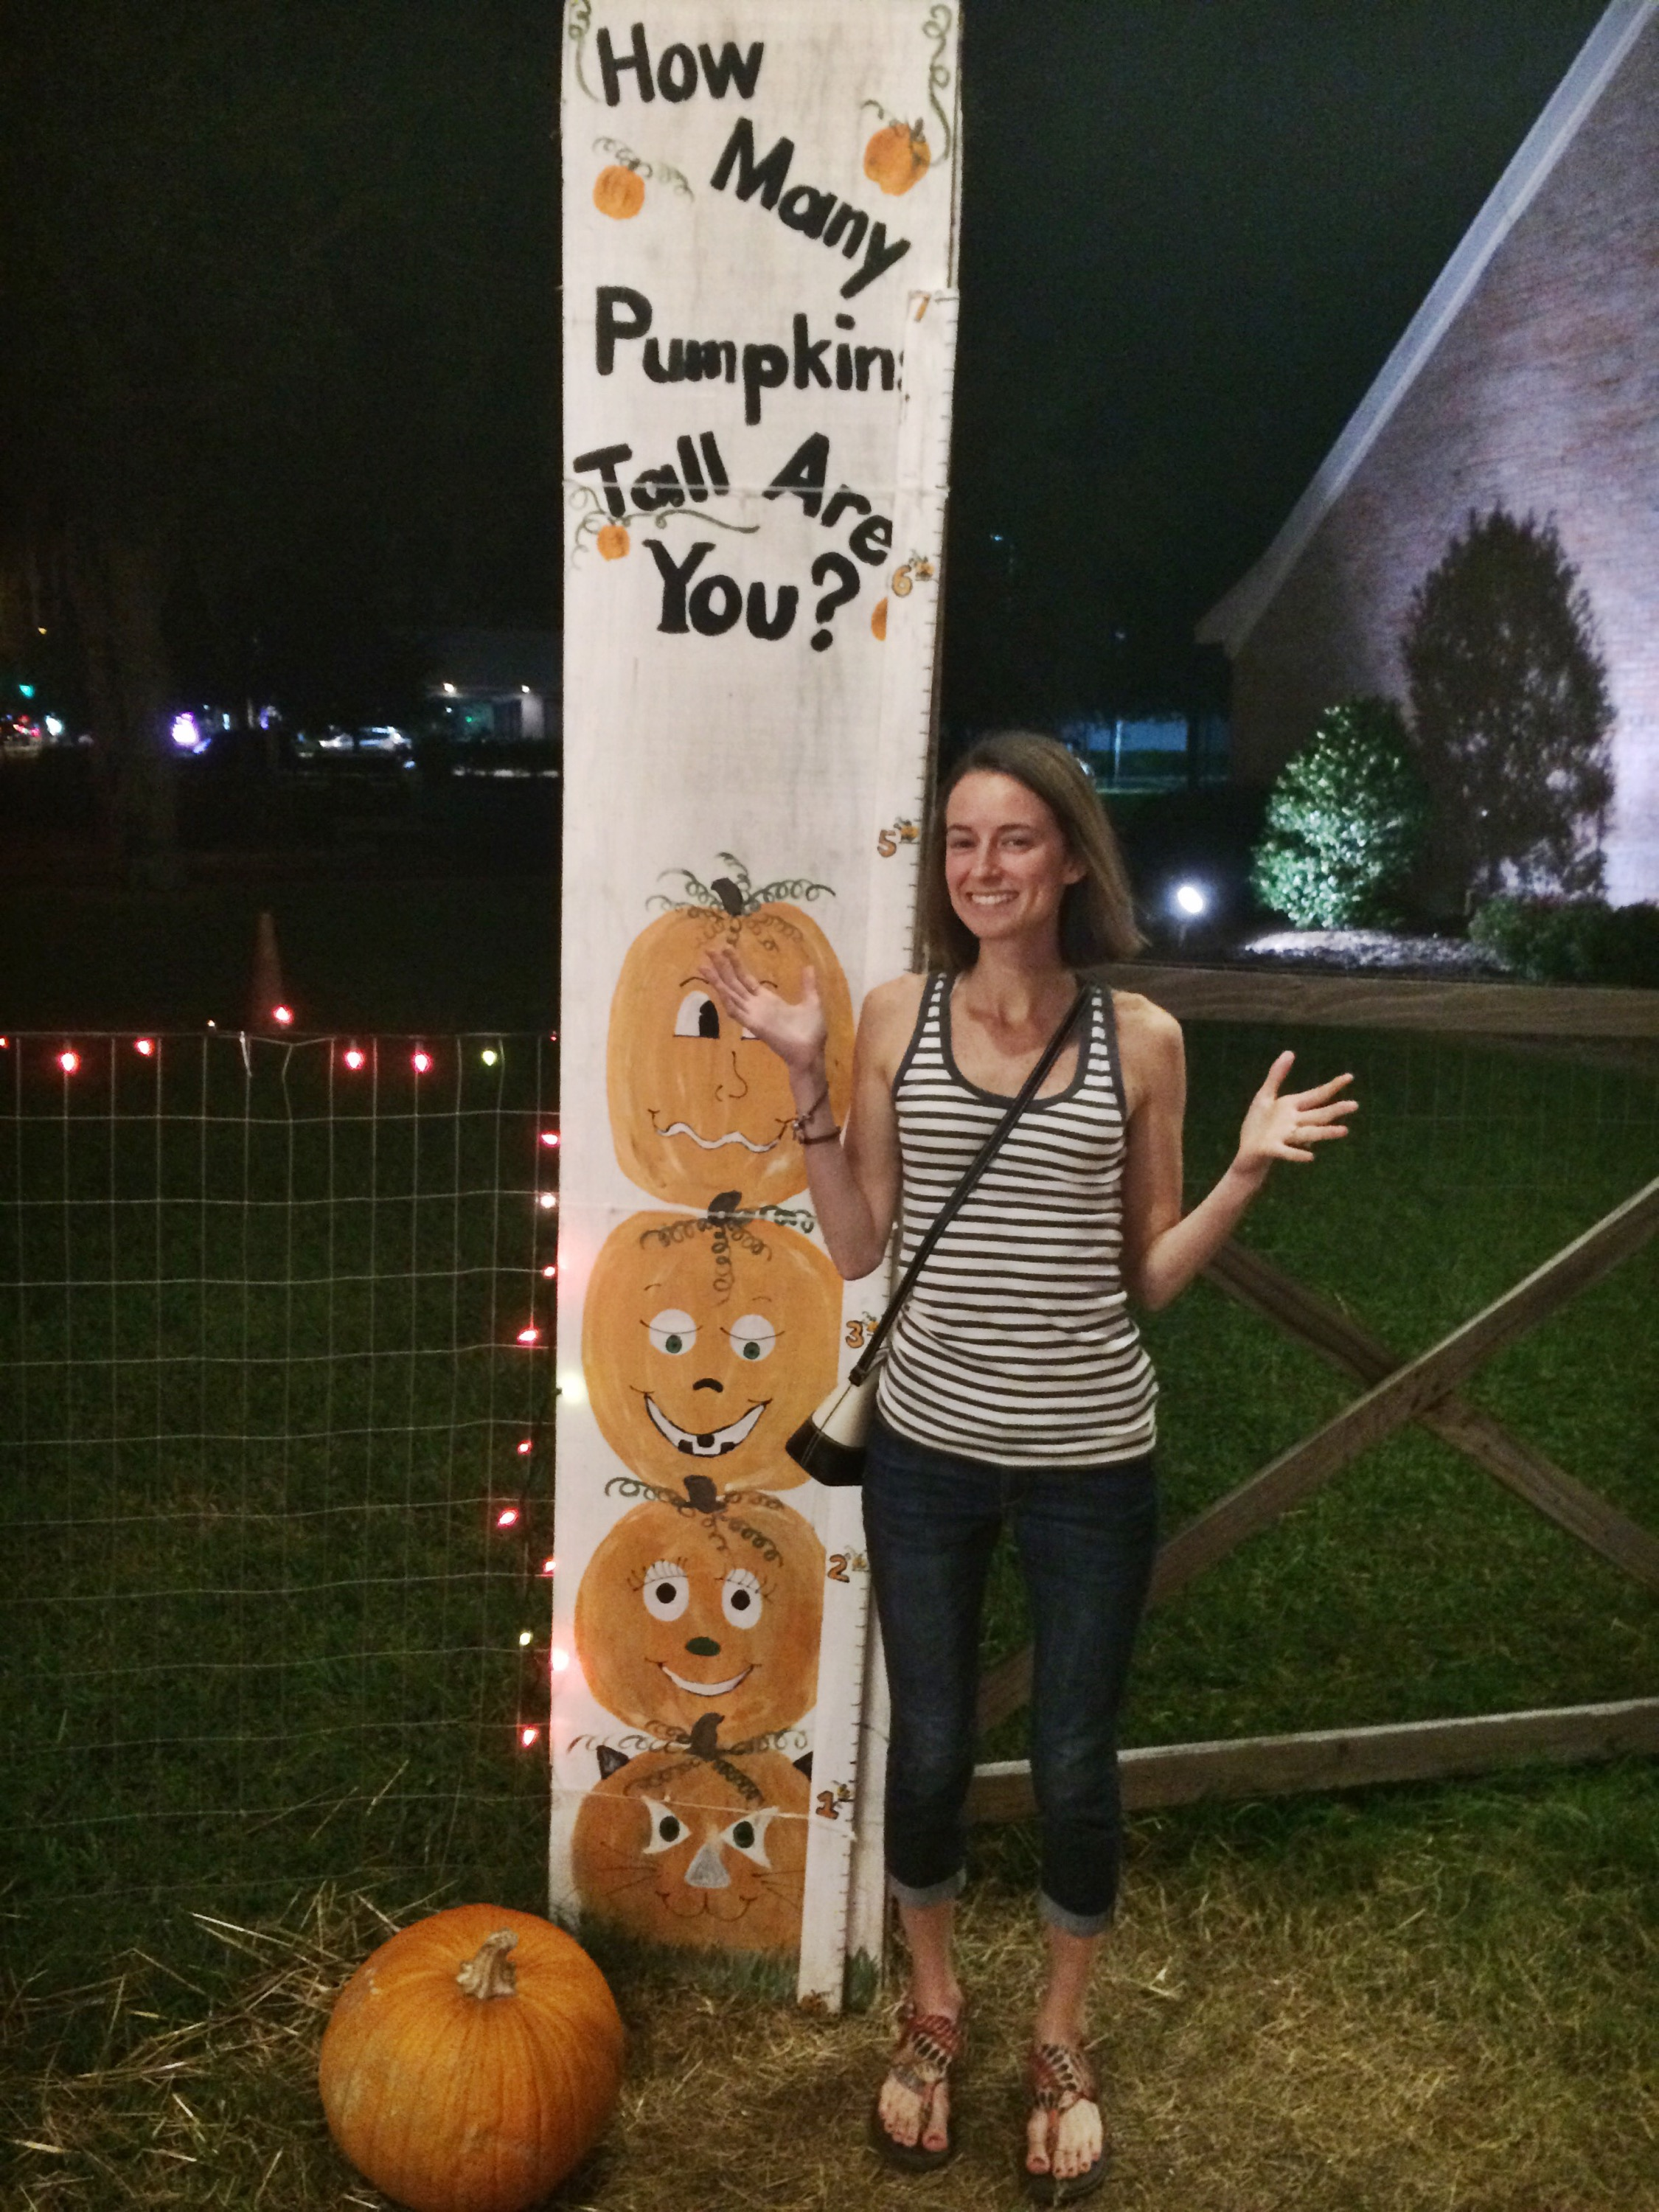 Pumpkin Patch Adventures - Some Shananagins